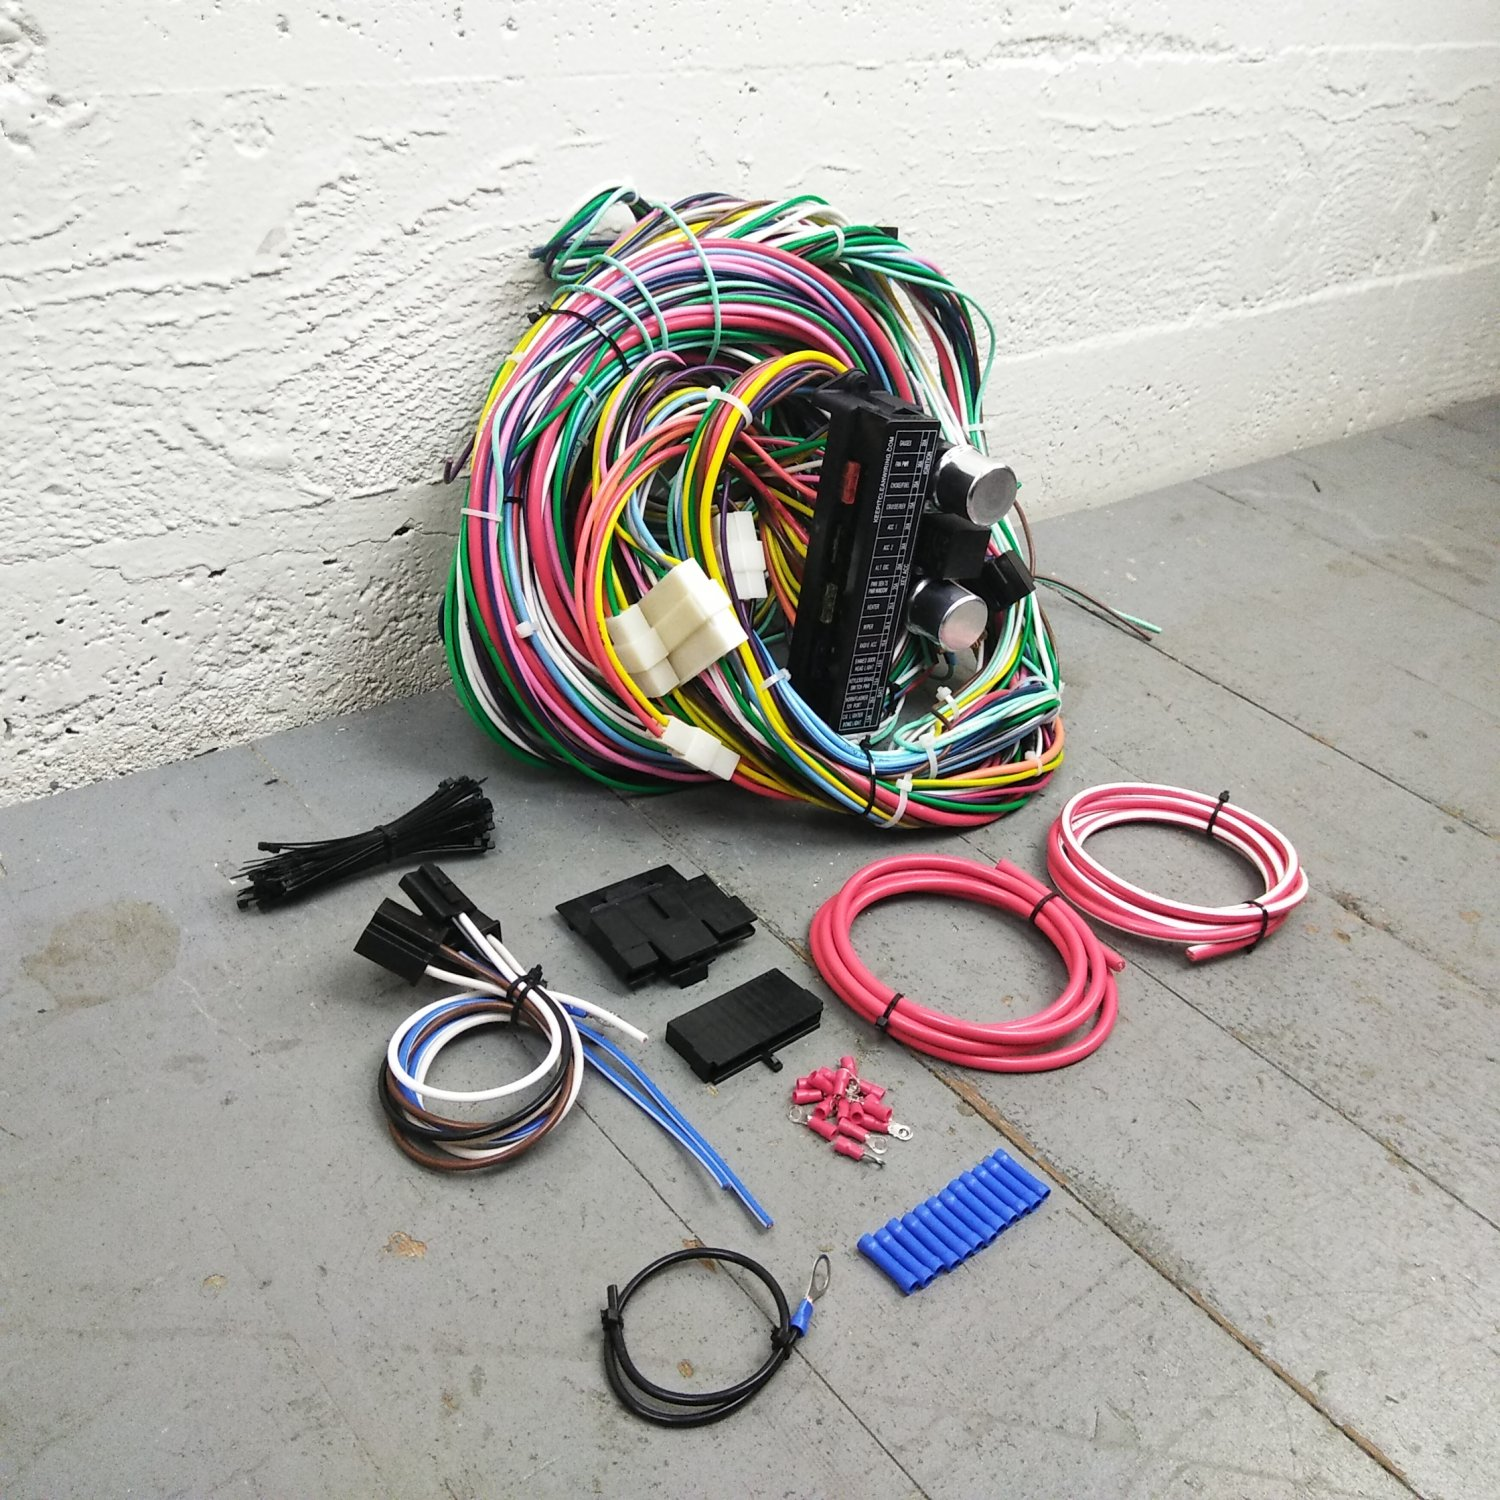 BMW 2002 Series E10 Wire Harness Upgrade Kit fits painless terminal compact  new. Bar_Product_Description_C